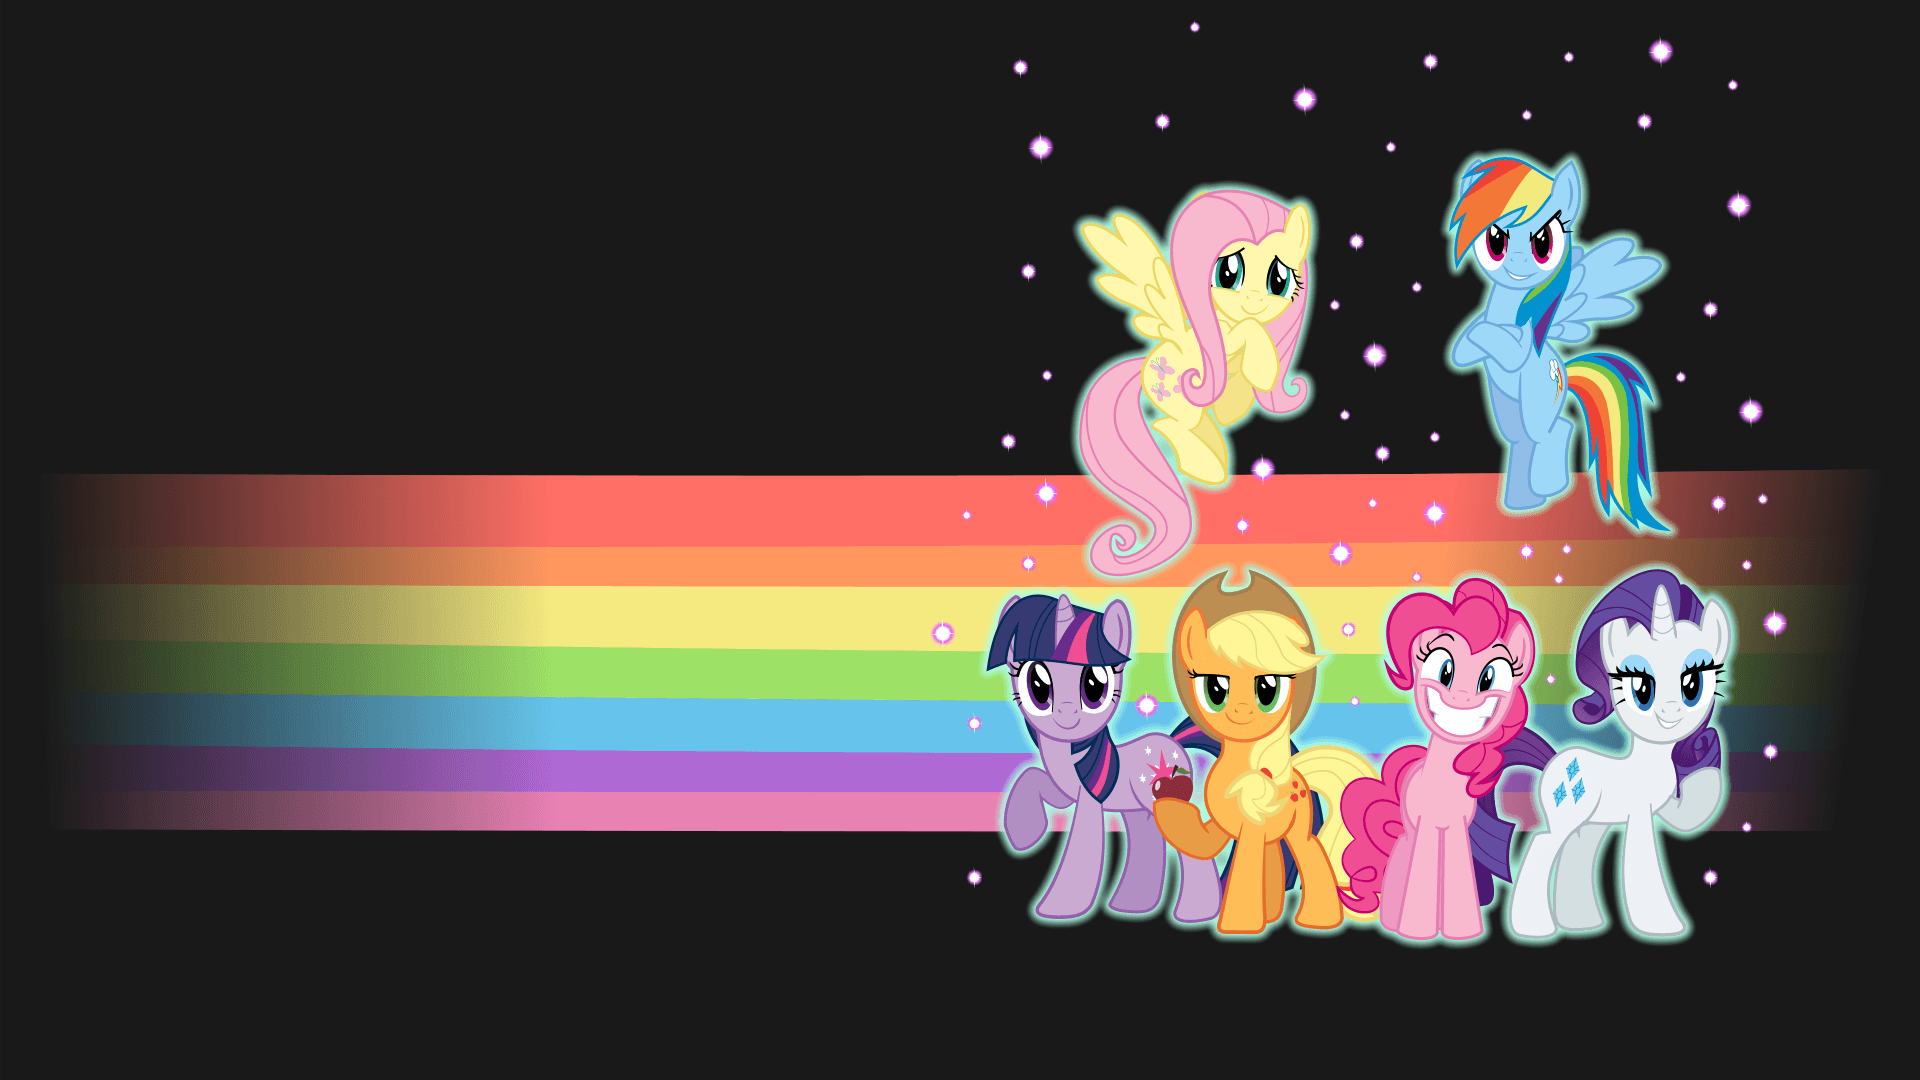 mlp background pony wallpapers - photo #10